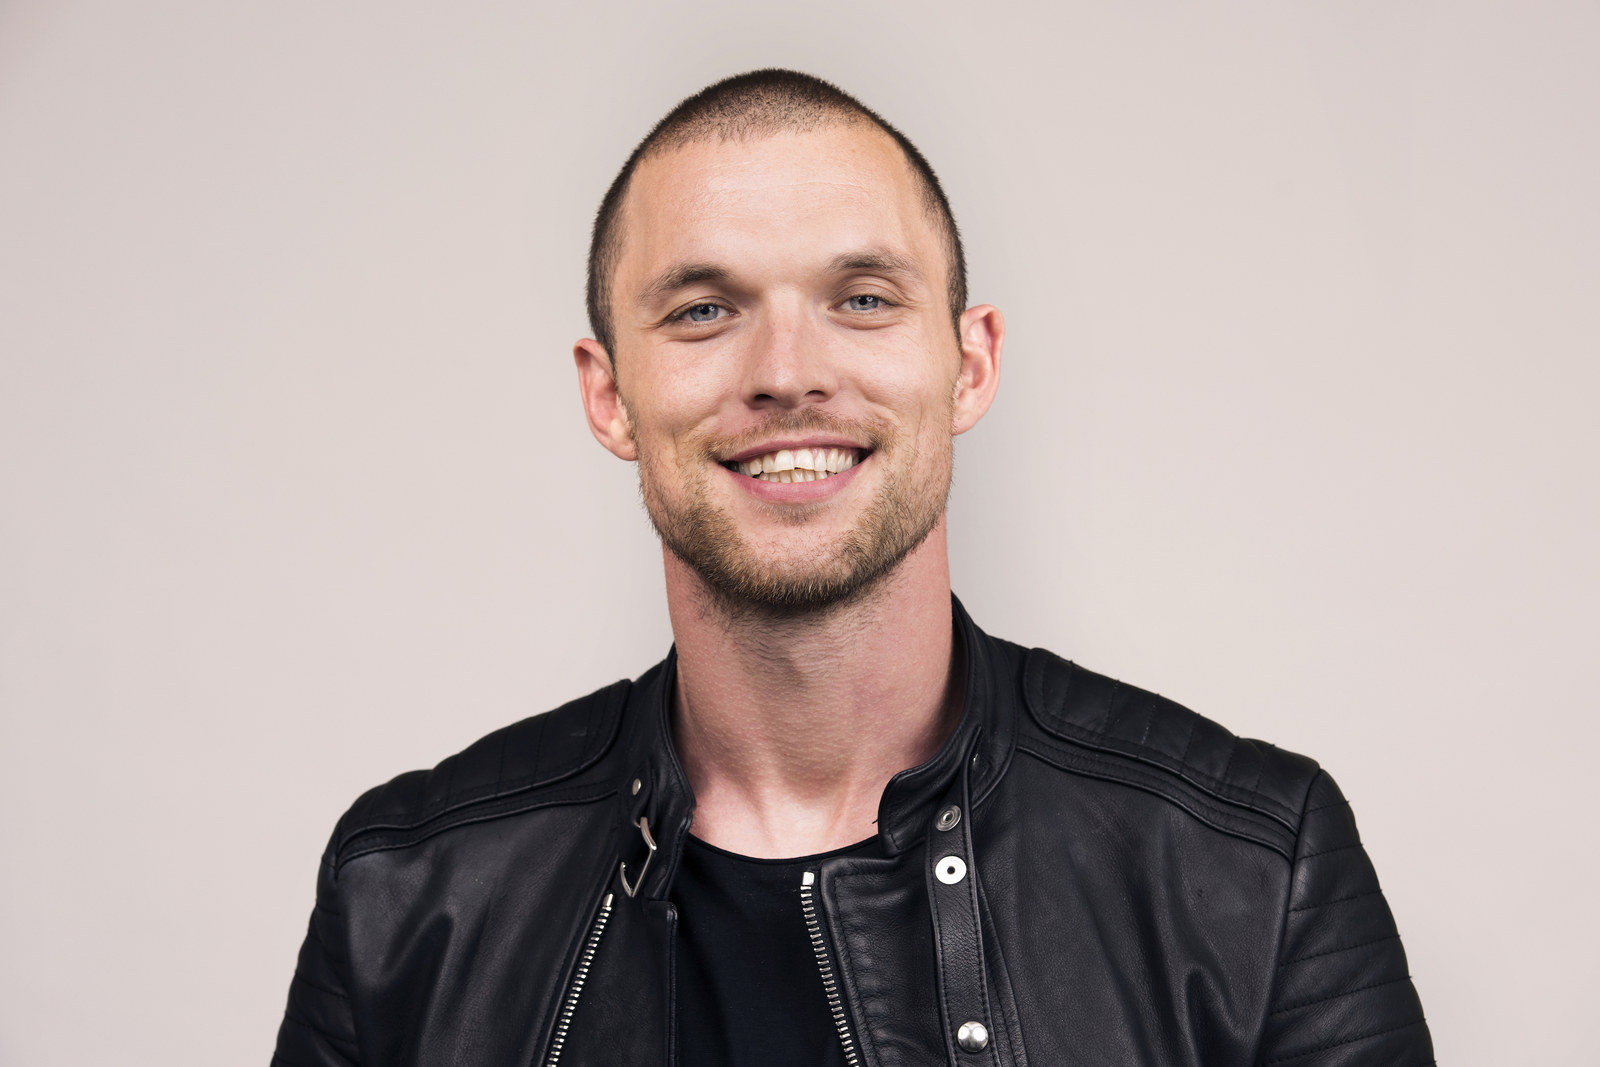 ed skrein game of throneed skrein wife, ed skrein gif, ed skrein height, ed skrein game of throne, ed skrein vk, ed skrein tumblr, ed skrein filmi, ed skrein deadpool, ed skrein age, ed skrein model, ed skrein daario, ed skrein healthy celeb, ed skrein gallery, ed skrein just jared, ed skrein got, ed skrein movies, ed skrein music, ed skrein filmleri, ed skrein real height, ed skrein ajax